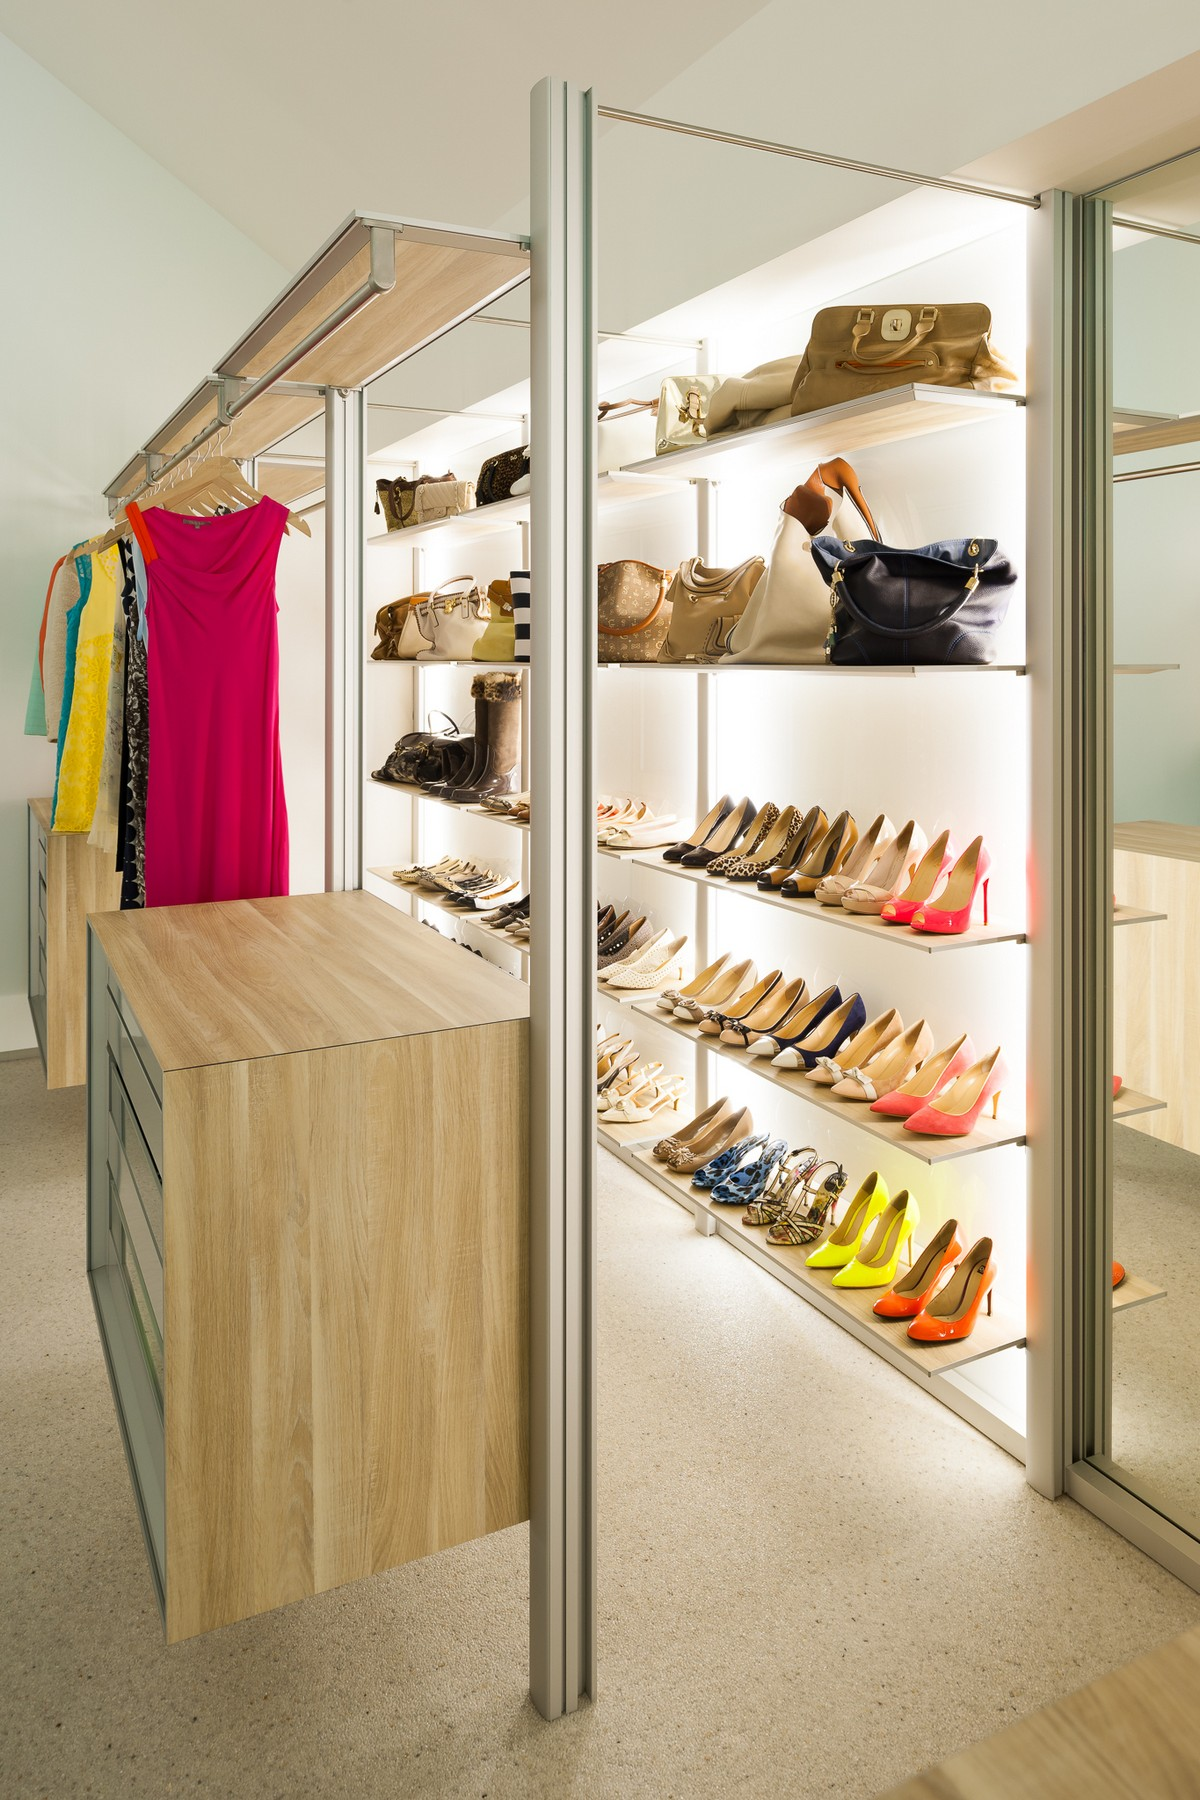 Walk In Dresswall Closet To Make Dresseing A Pleasure